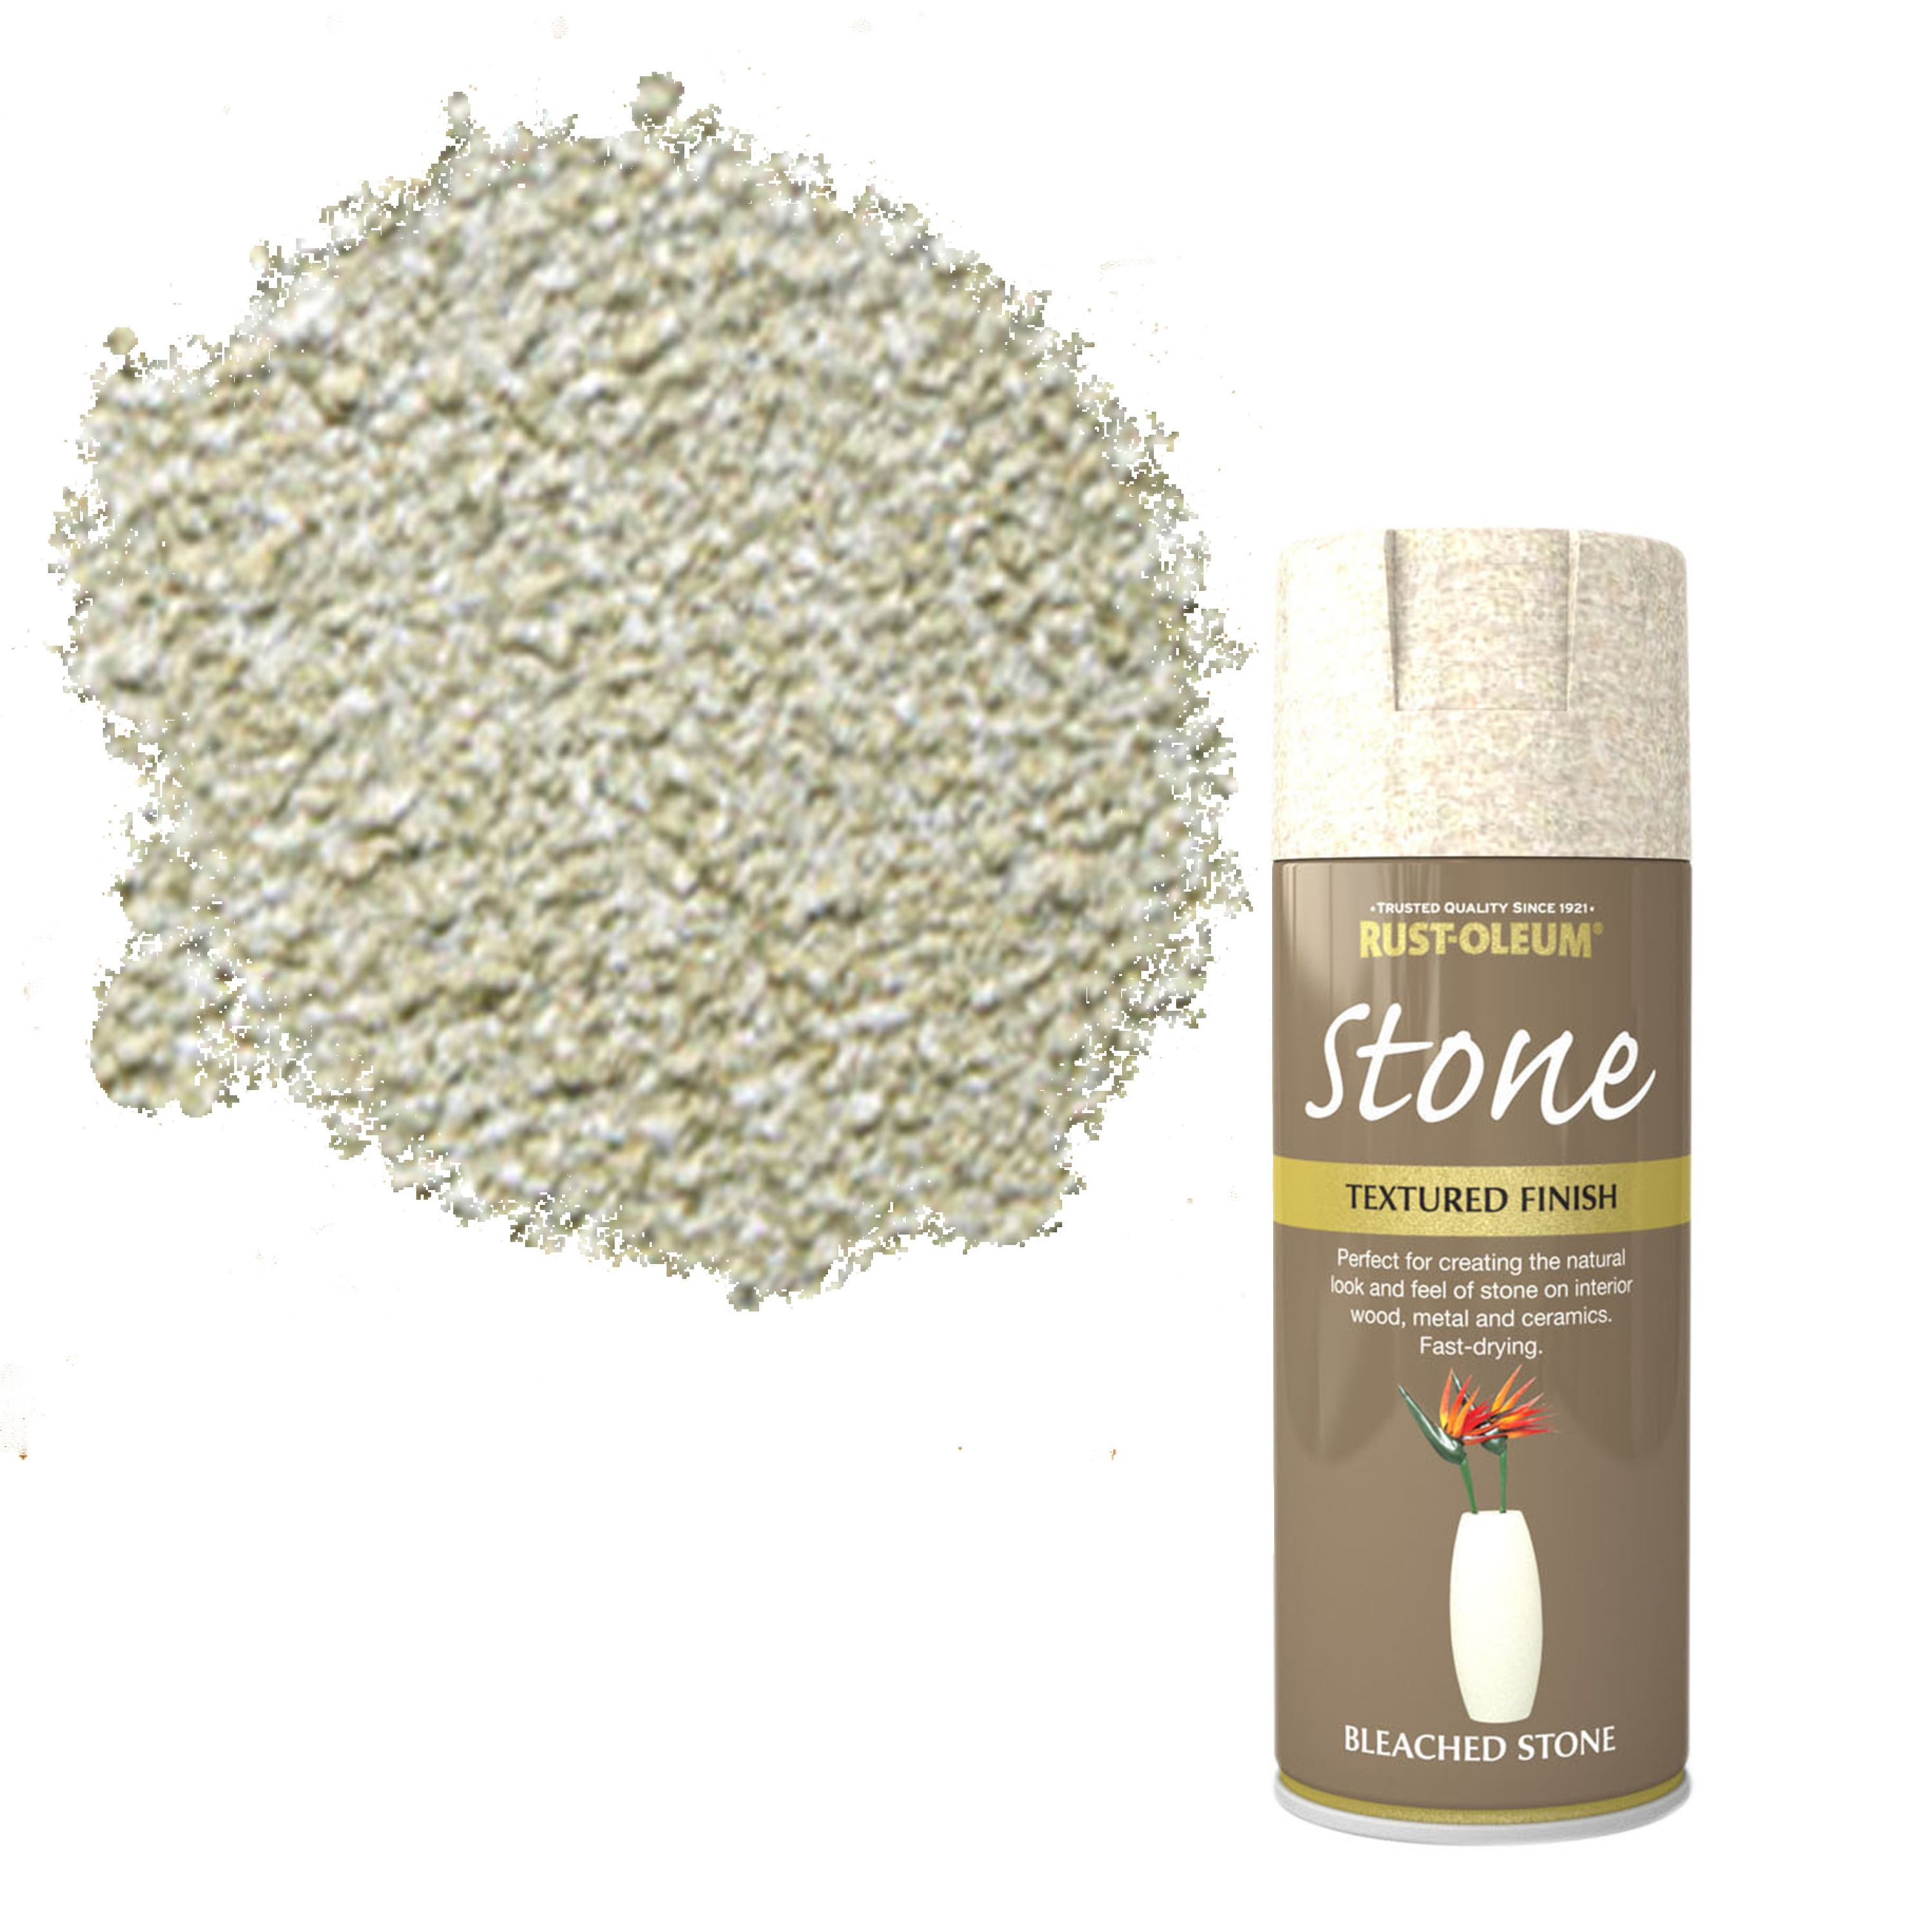 Rust-oleum Stone Bleached Stone Stone Effect Textured Spray Paint 400 Ml